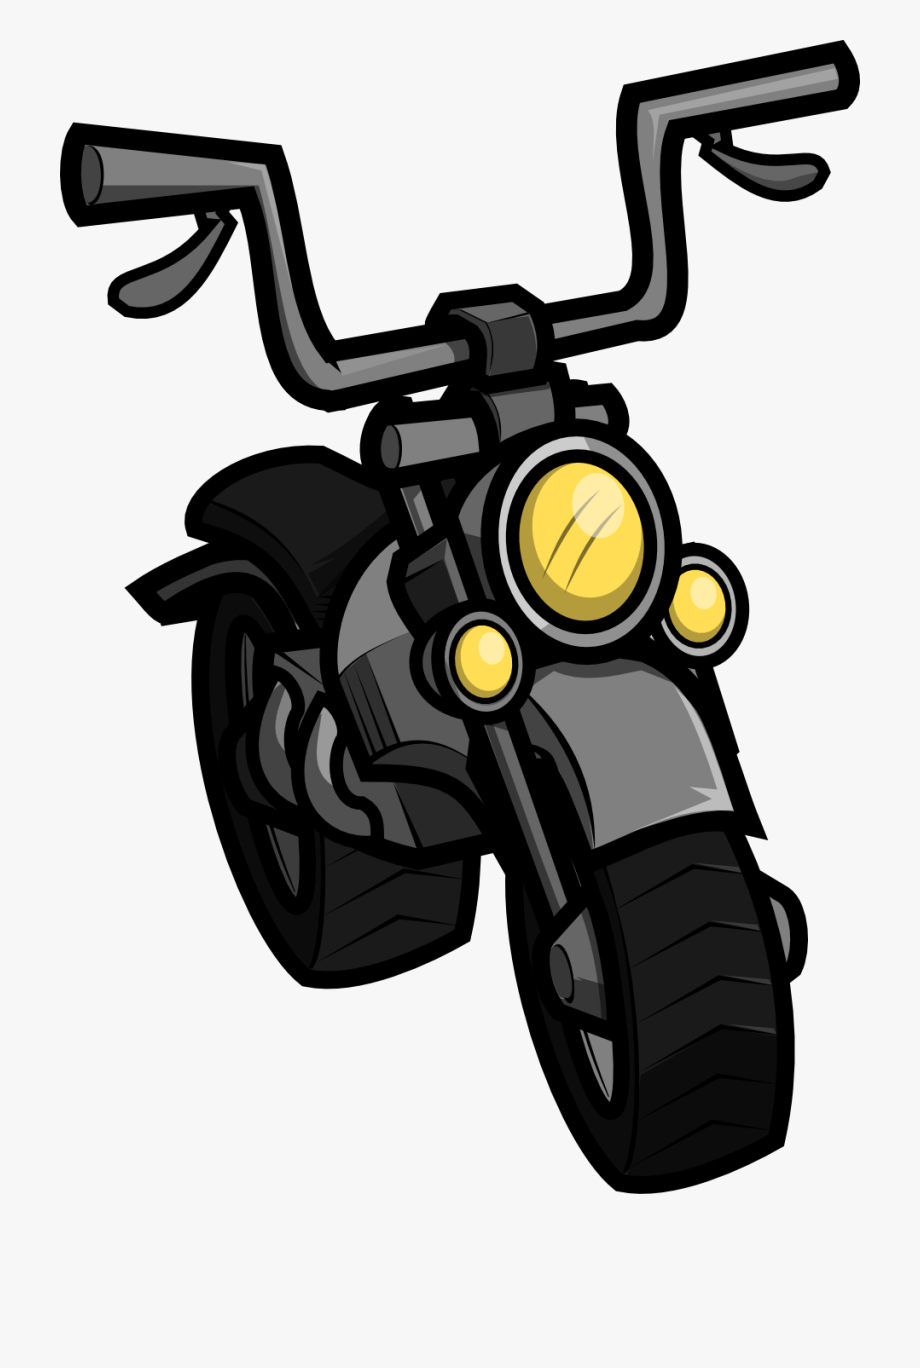 Download - Clipart Motorcycle Cartoon , Transparent Cartoon, Free ... black and white download